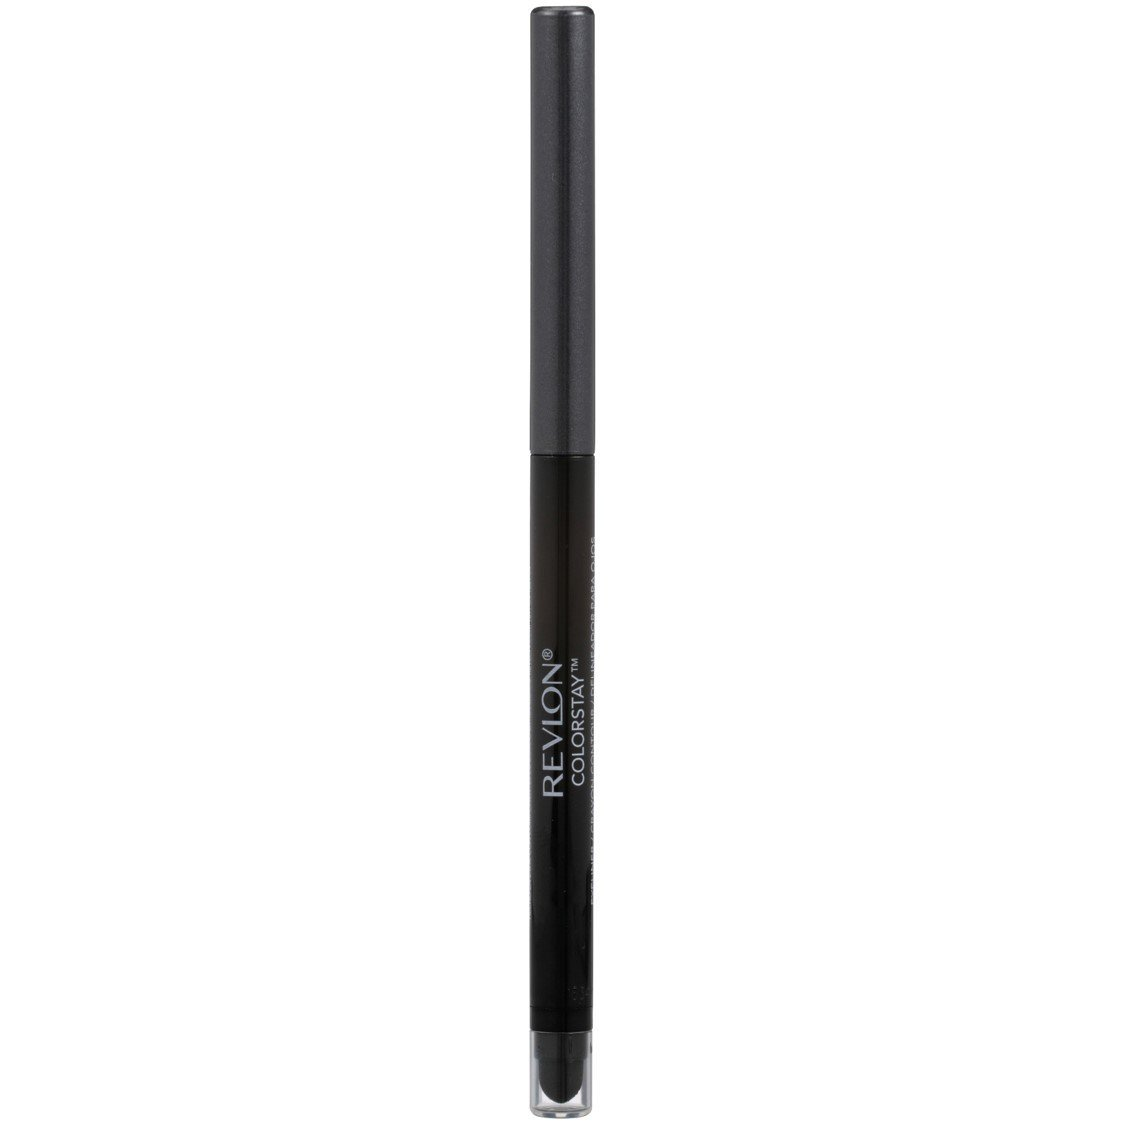 Revlon ColorStay Eyeliner with SoftFlex, Charcoal 204, 0.1 Ounce (.28 g) 309973978041